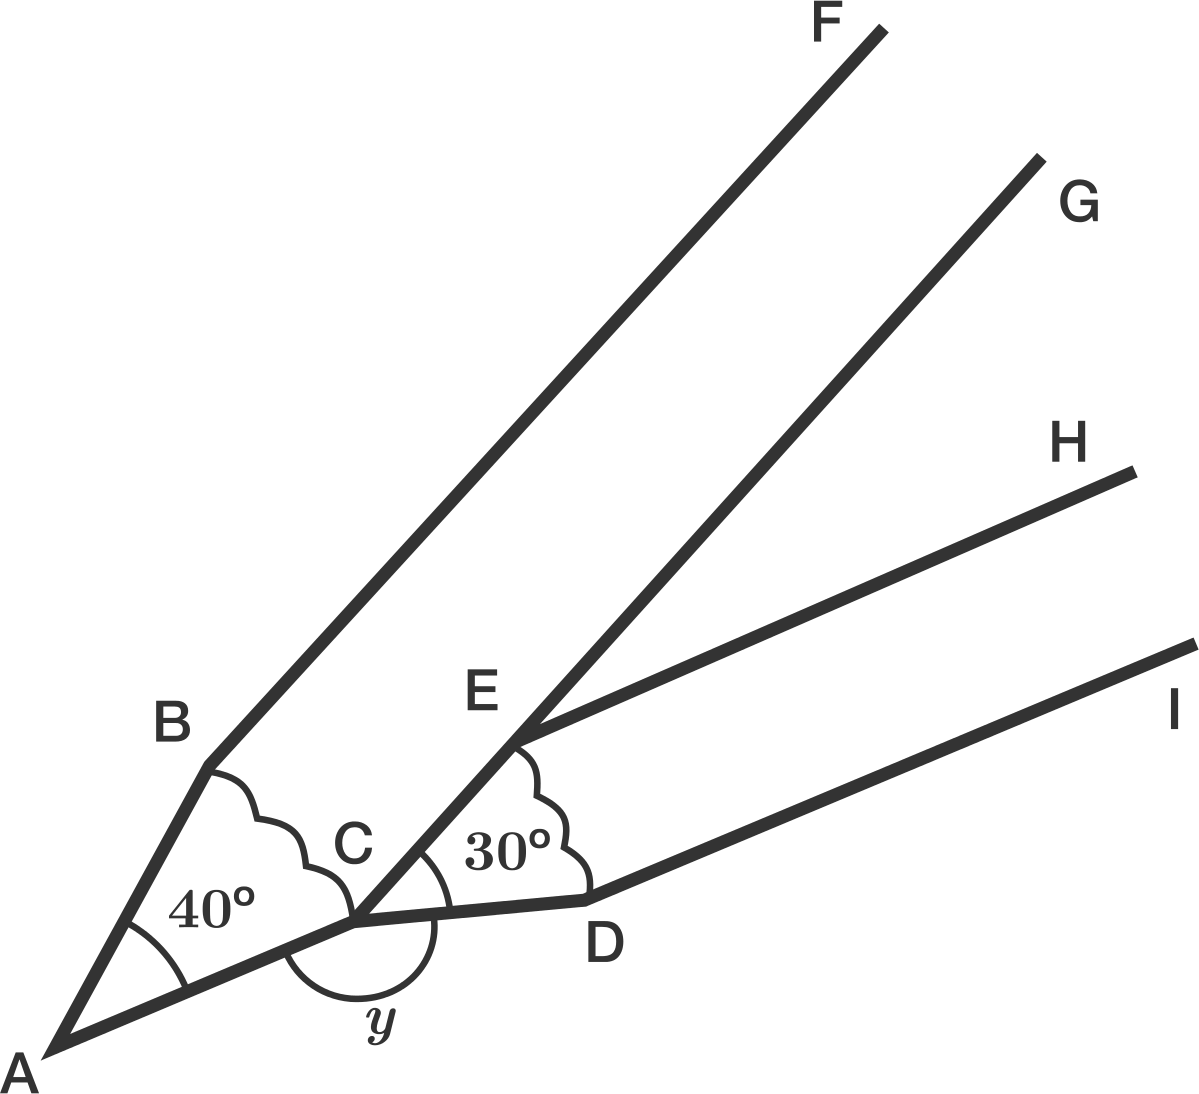 Angles And Lines Level 2 Challenges Practice Problems